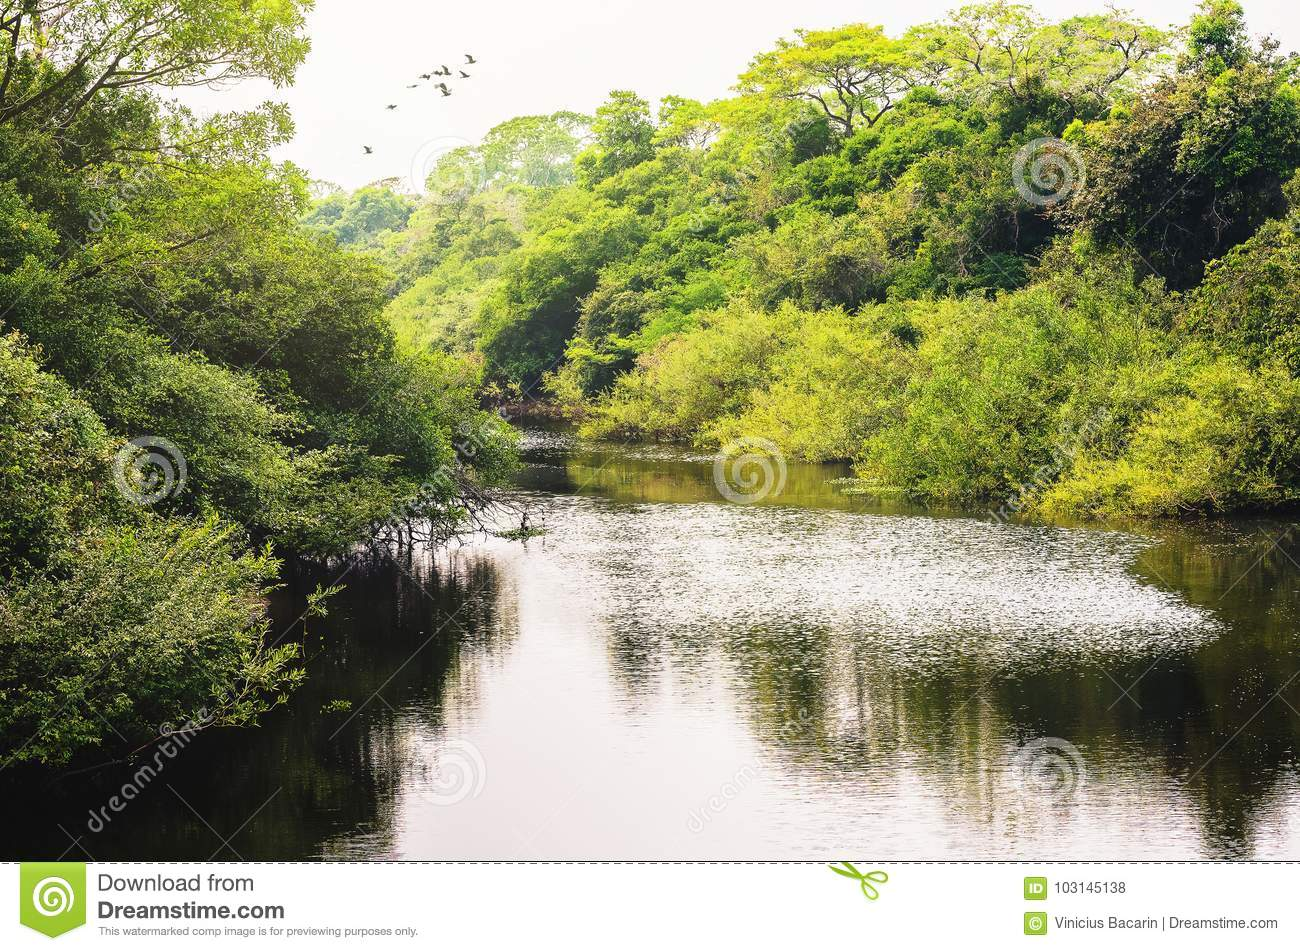 Landscape of a river surrounded by forest of green vegetation